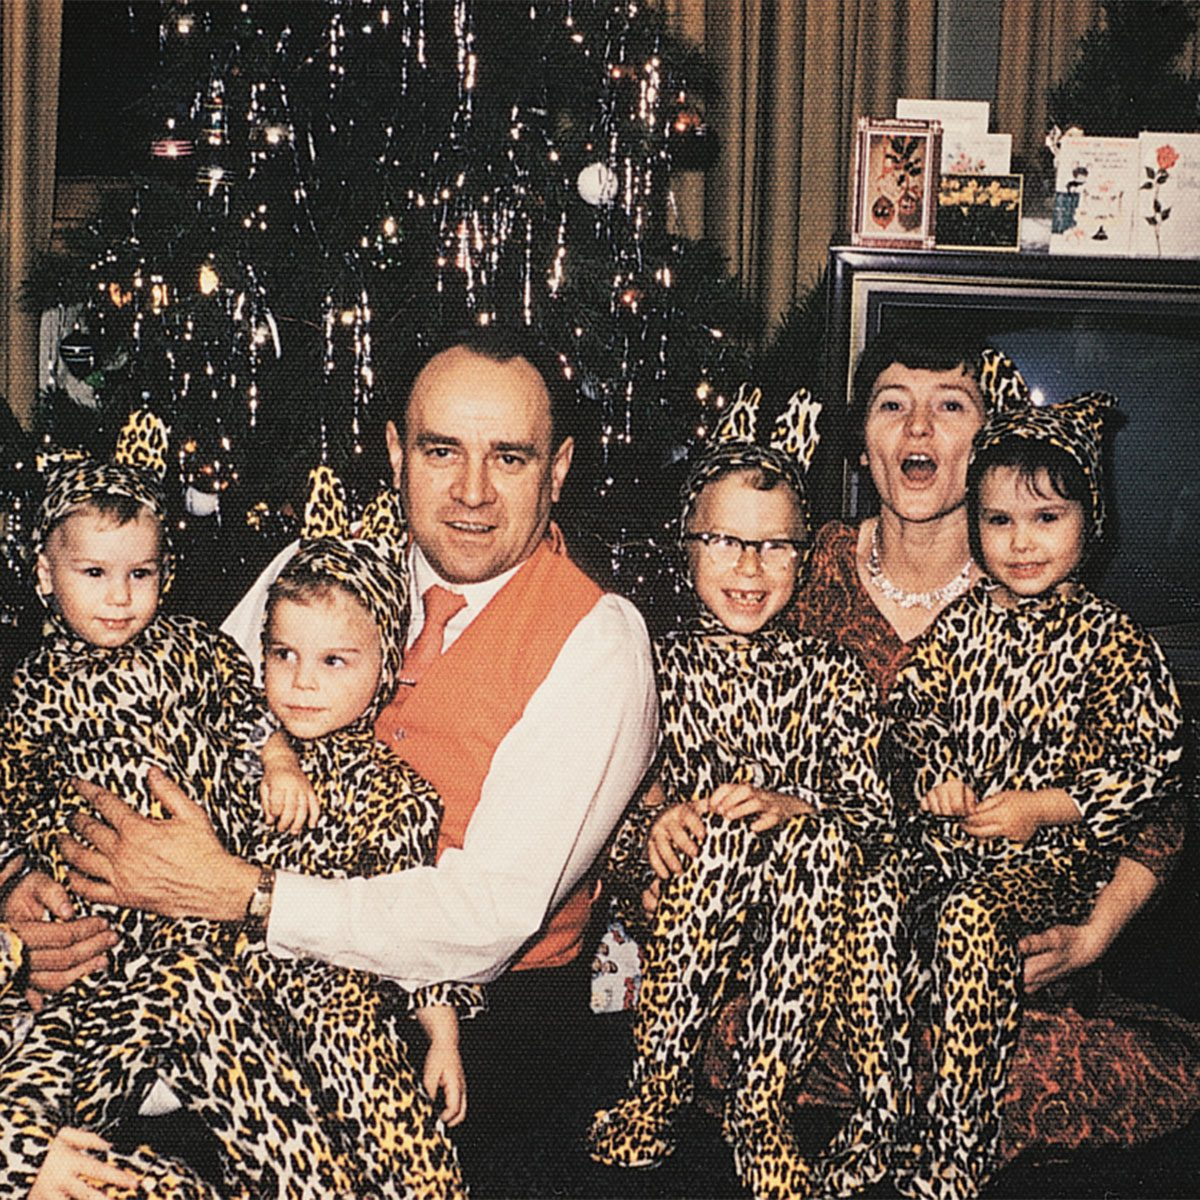 Family posing with matching leopard-print pjs